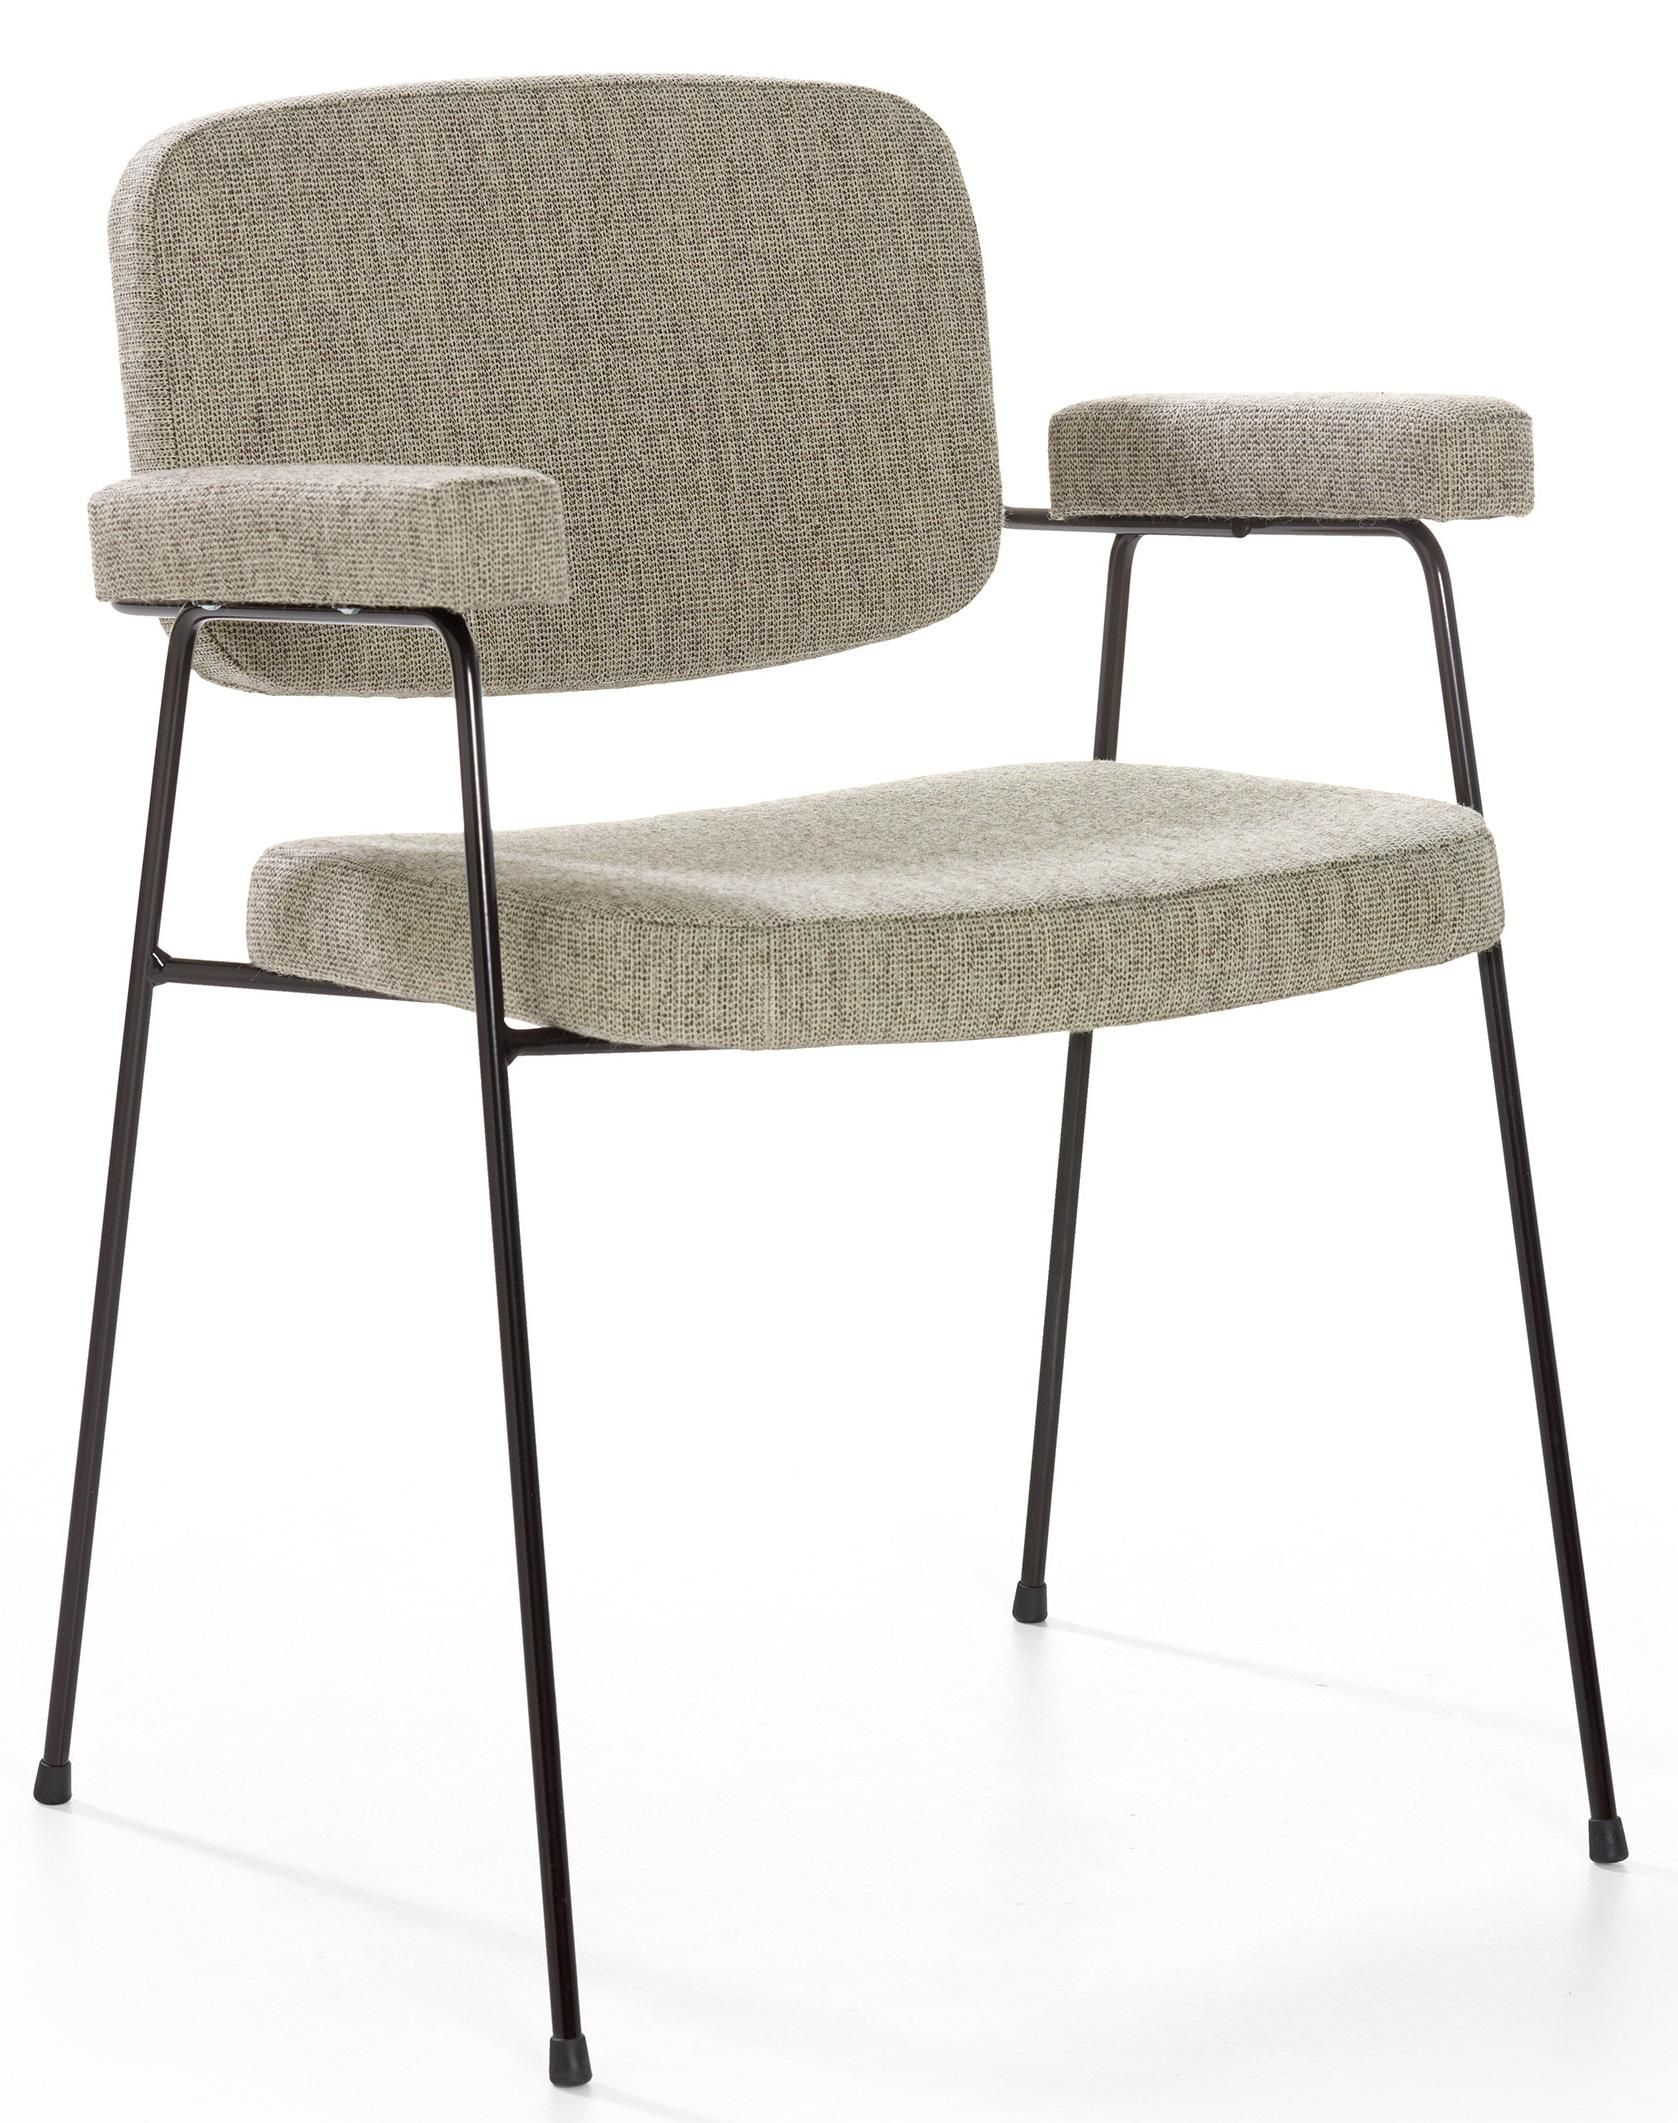 Moulin F 0927 Chair With Armrests by Artifort in Conference Chairs